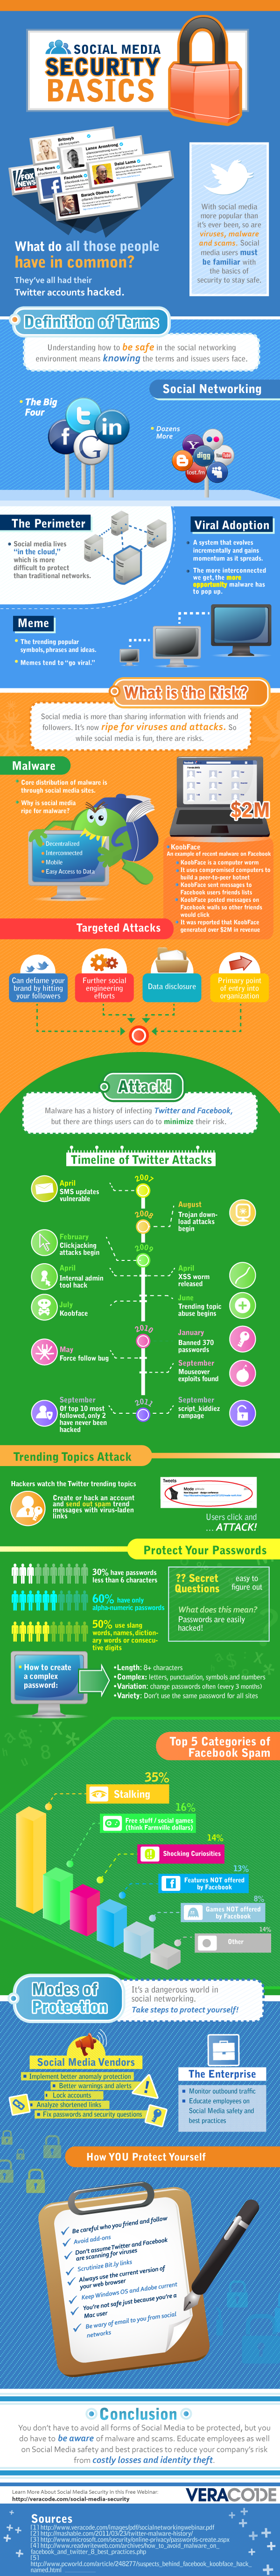 Social Media Security Basics [Infographic]